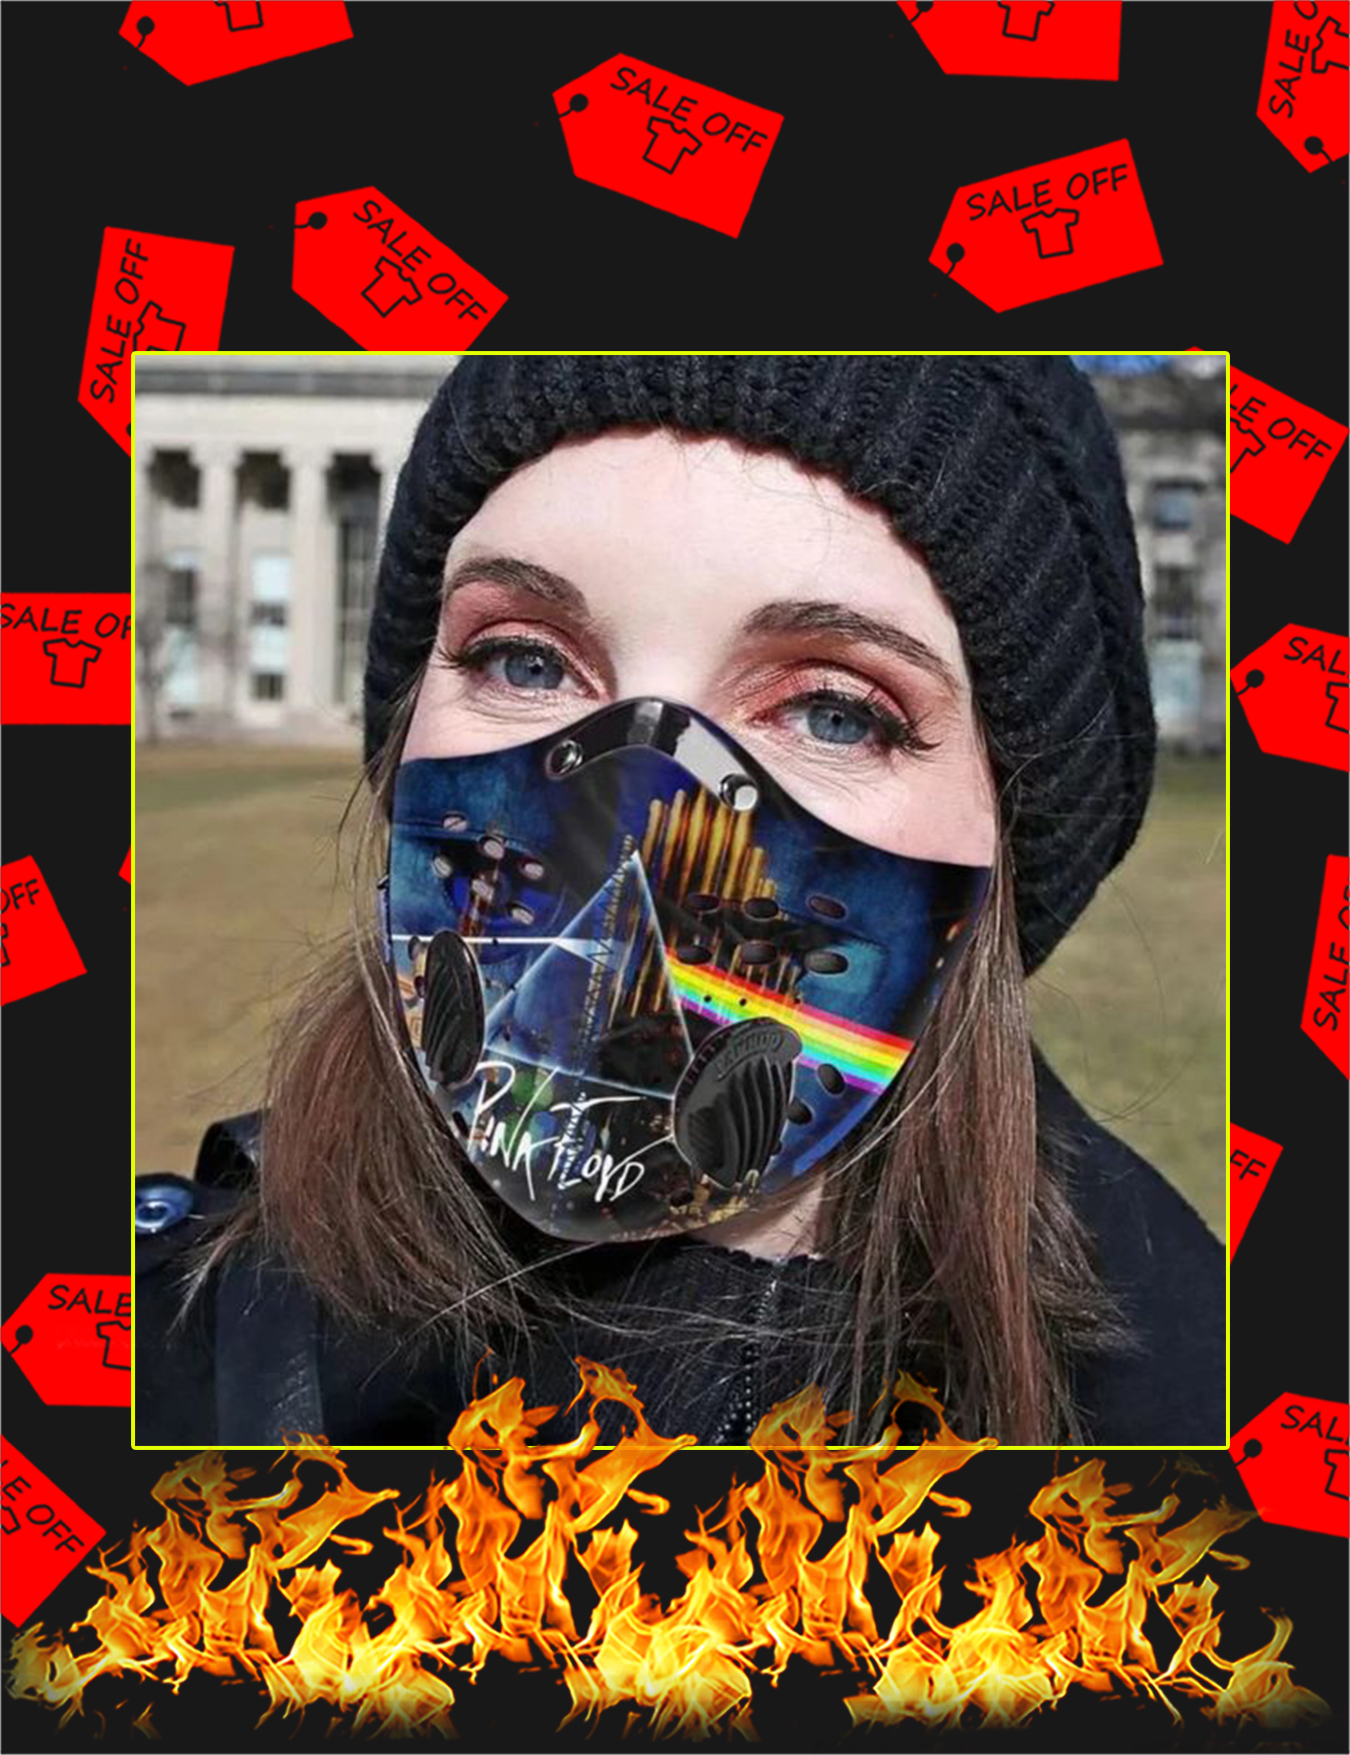 Pink floyd rock band filter face mask - Picture 1